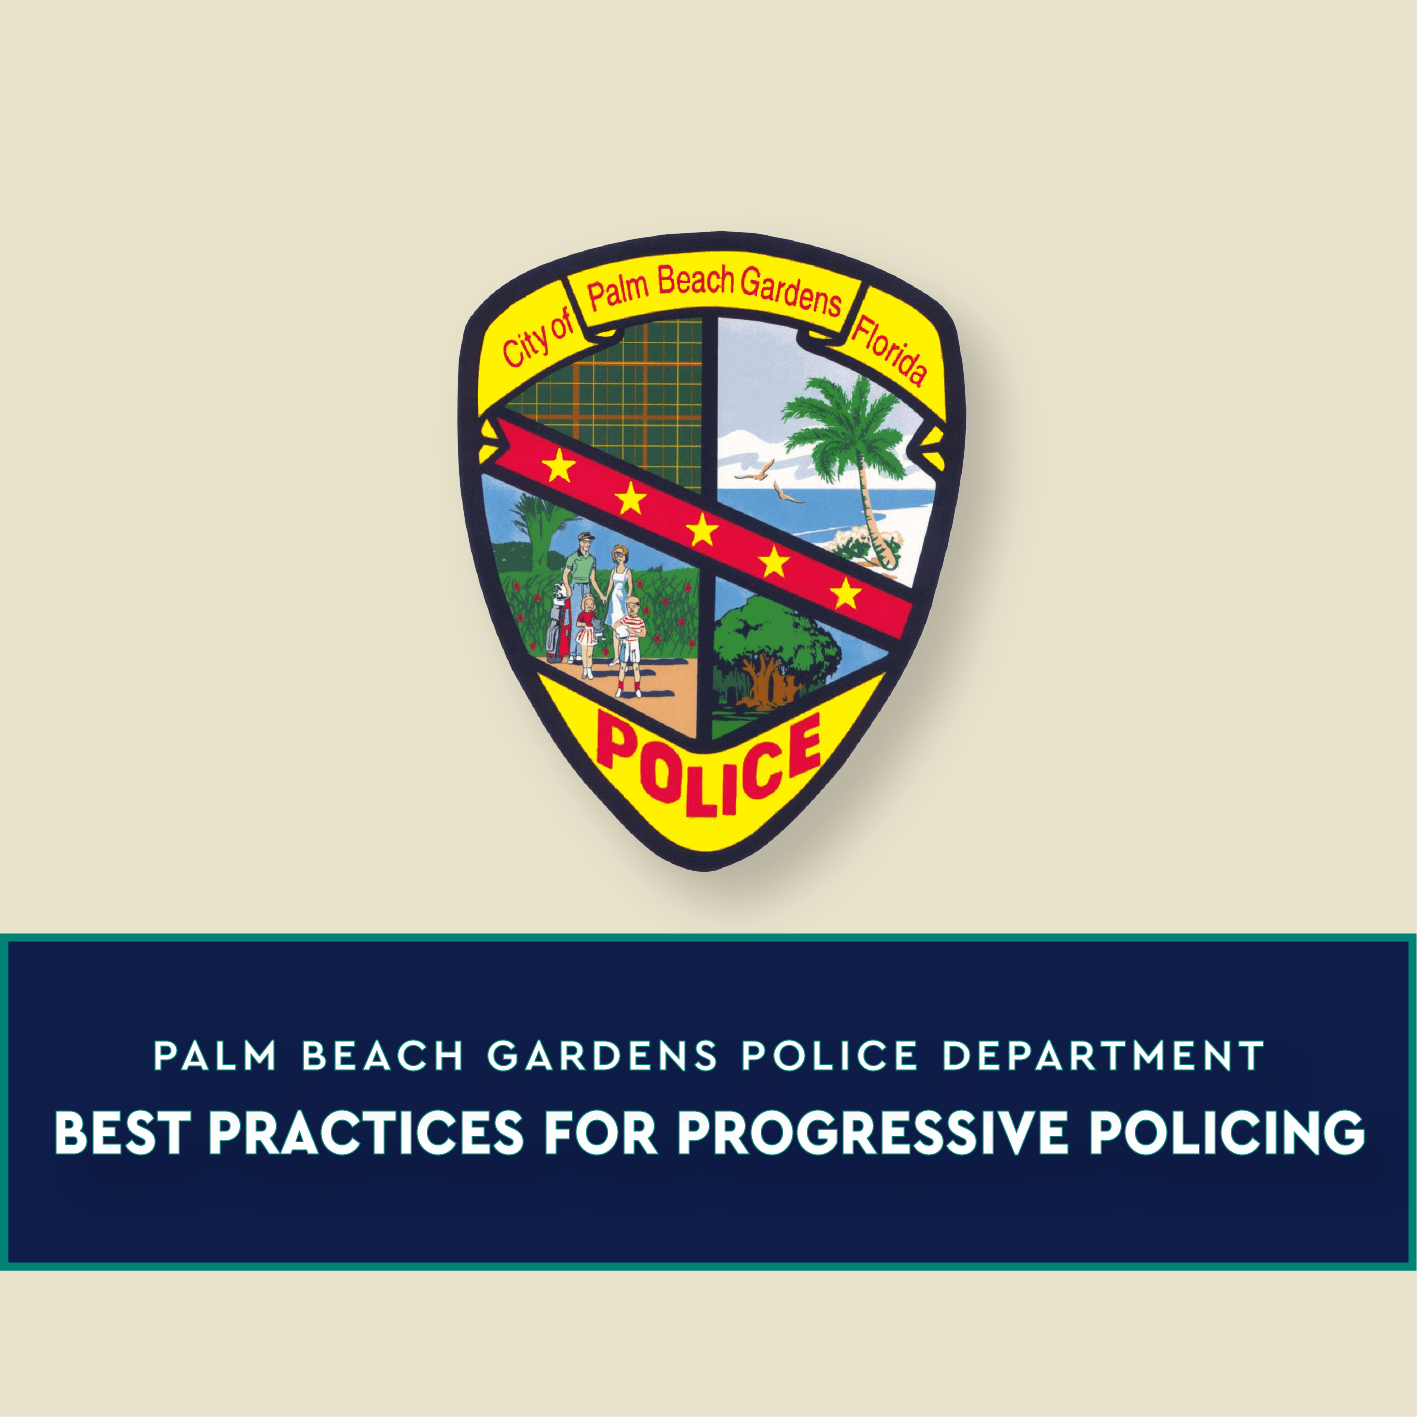 Best Practices for Progressive Policing